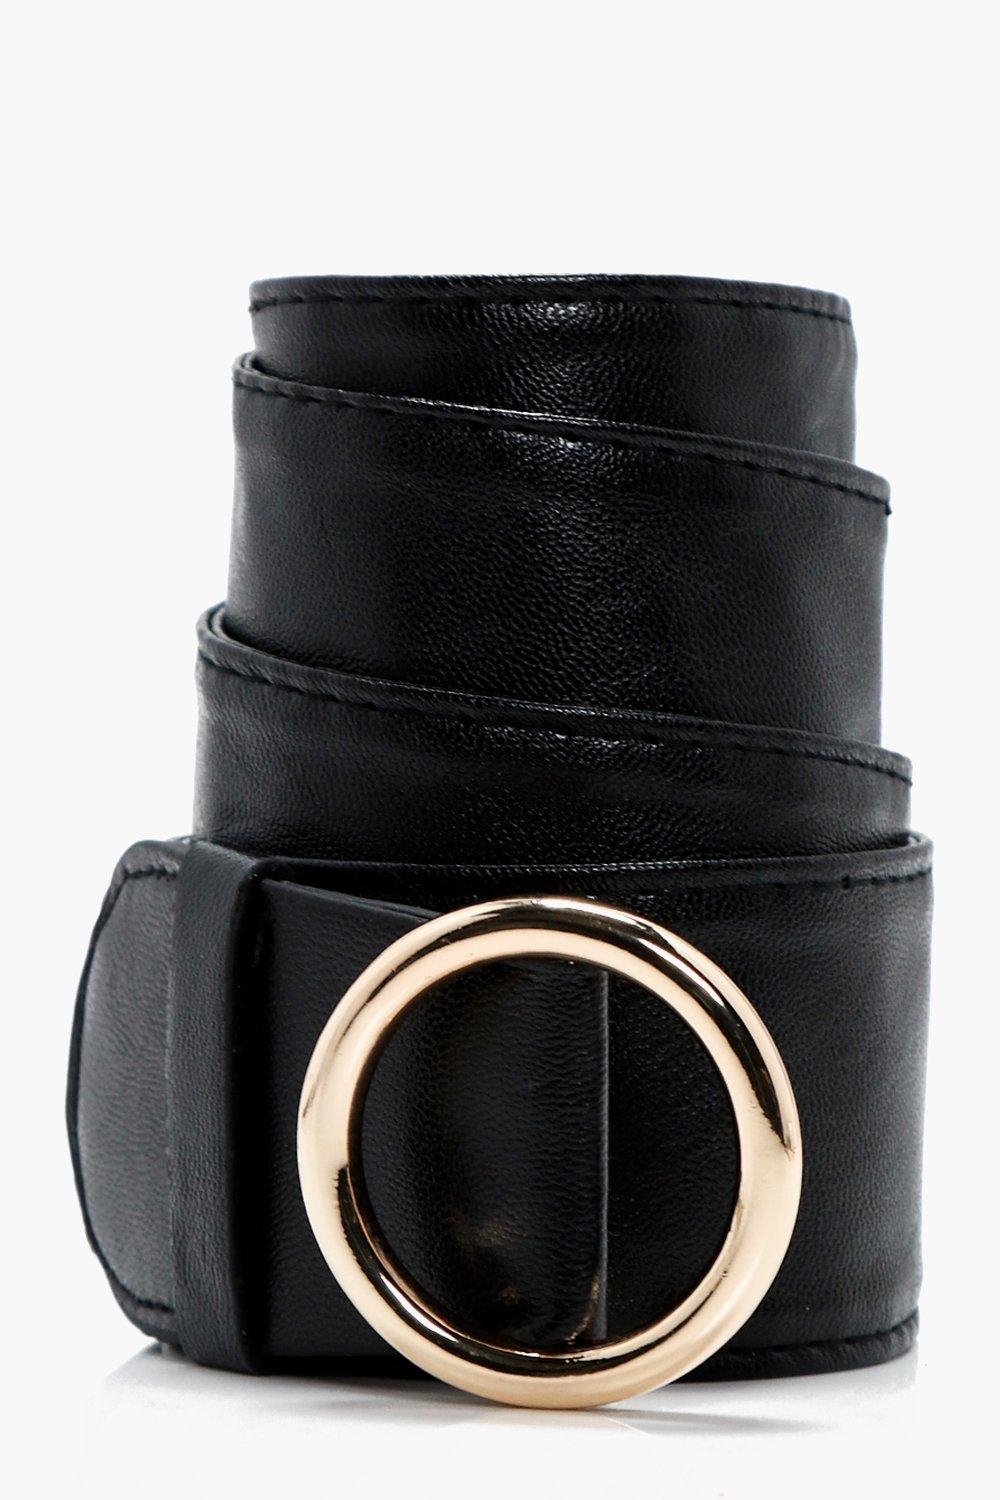 Circle Buckle Loop Through Belt - black - Lucy Cir